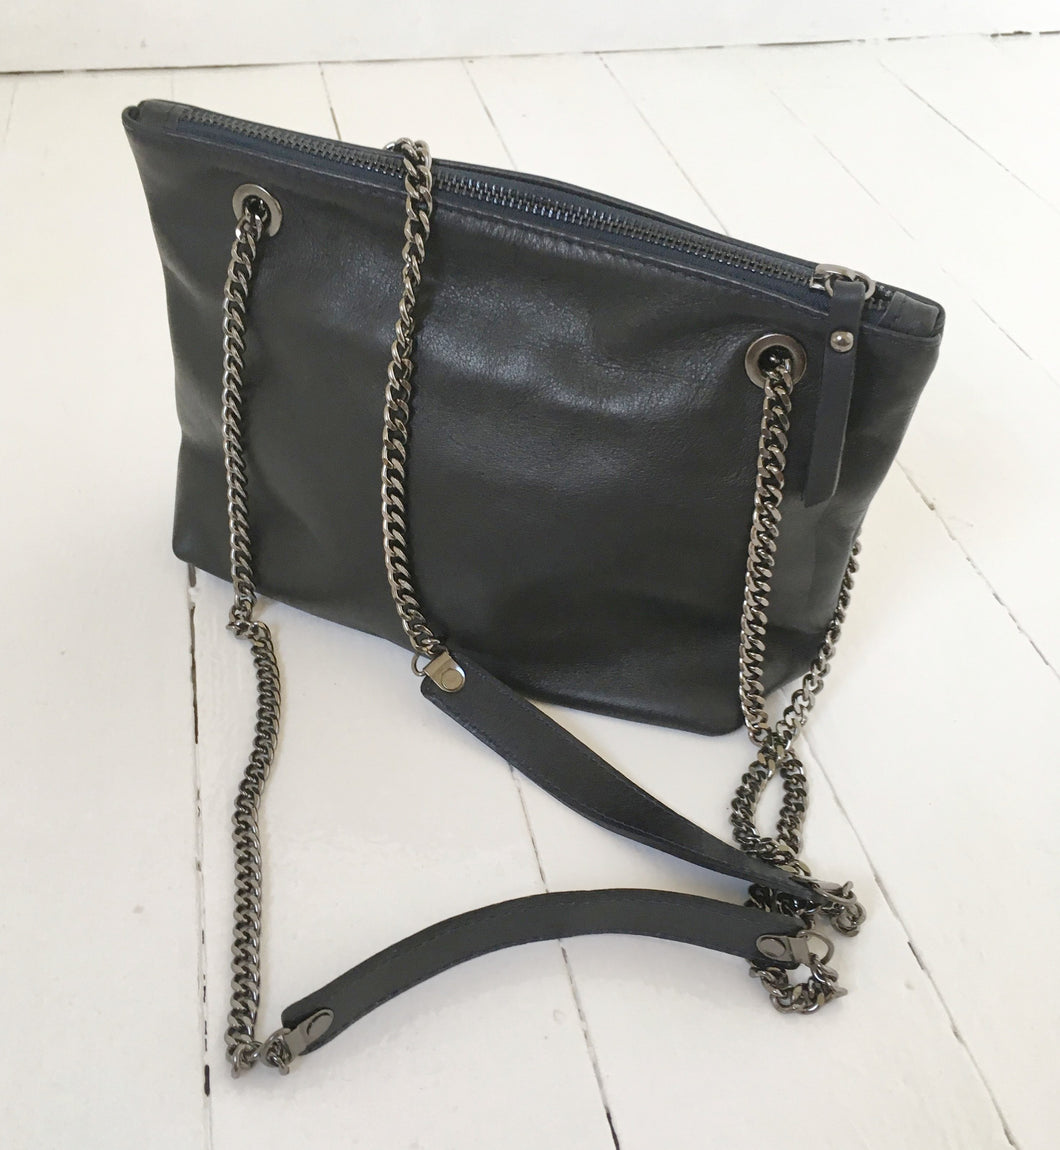 Navy Leather Bag by Bling Berlin